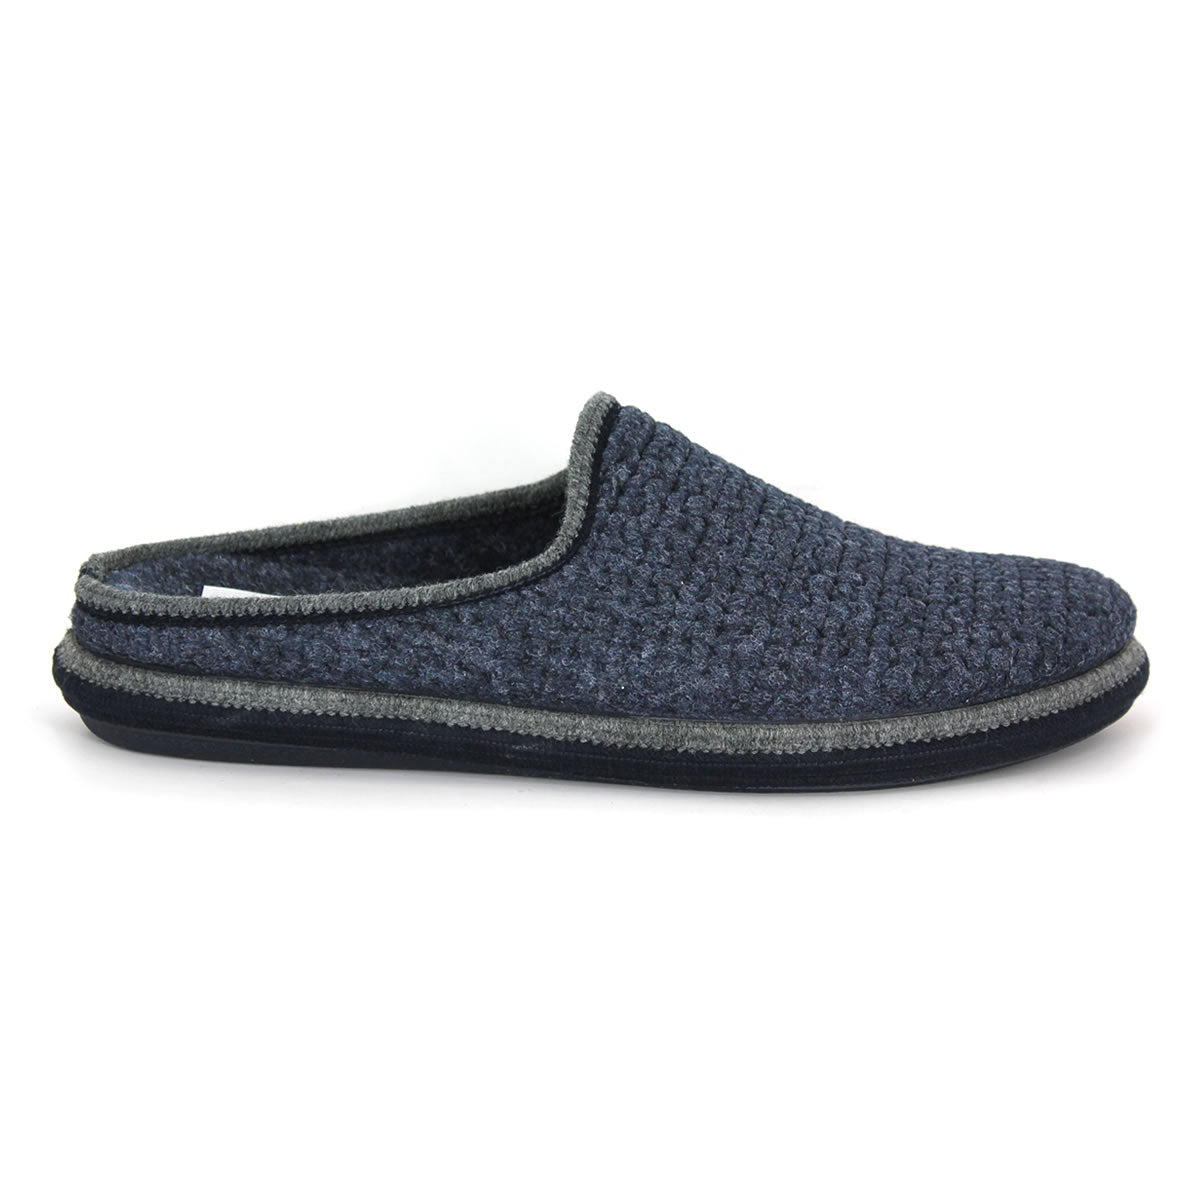 Fabric Mule Men's Slipper